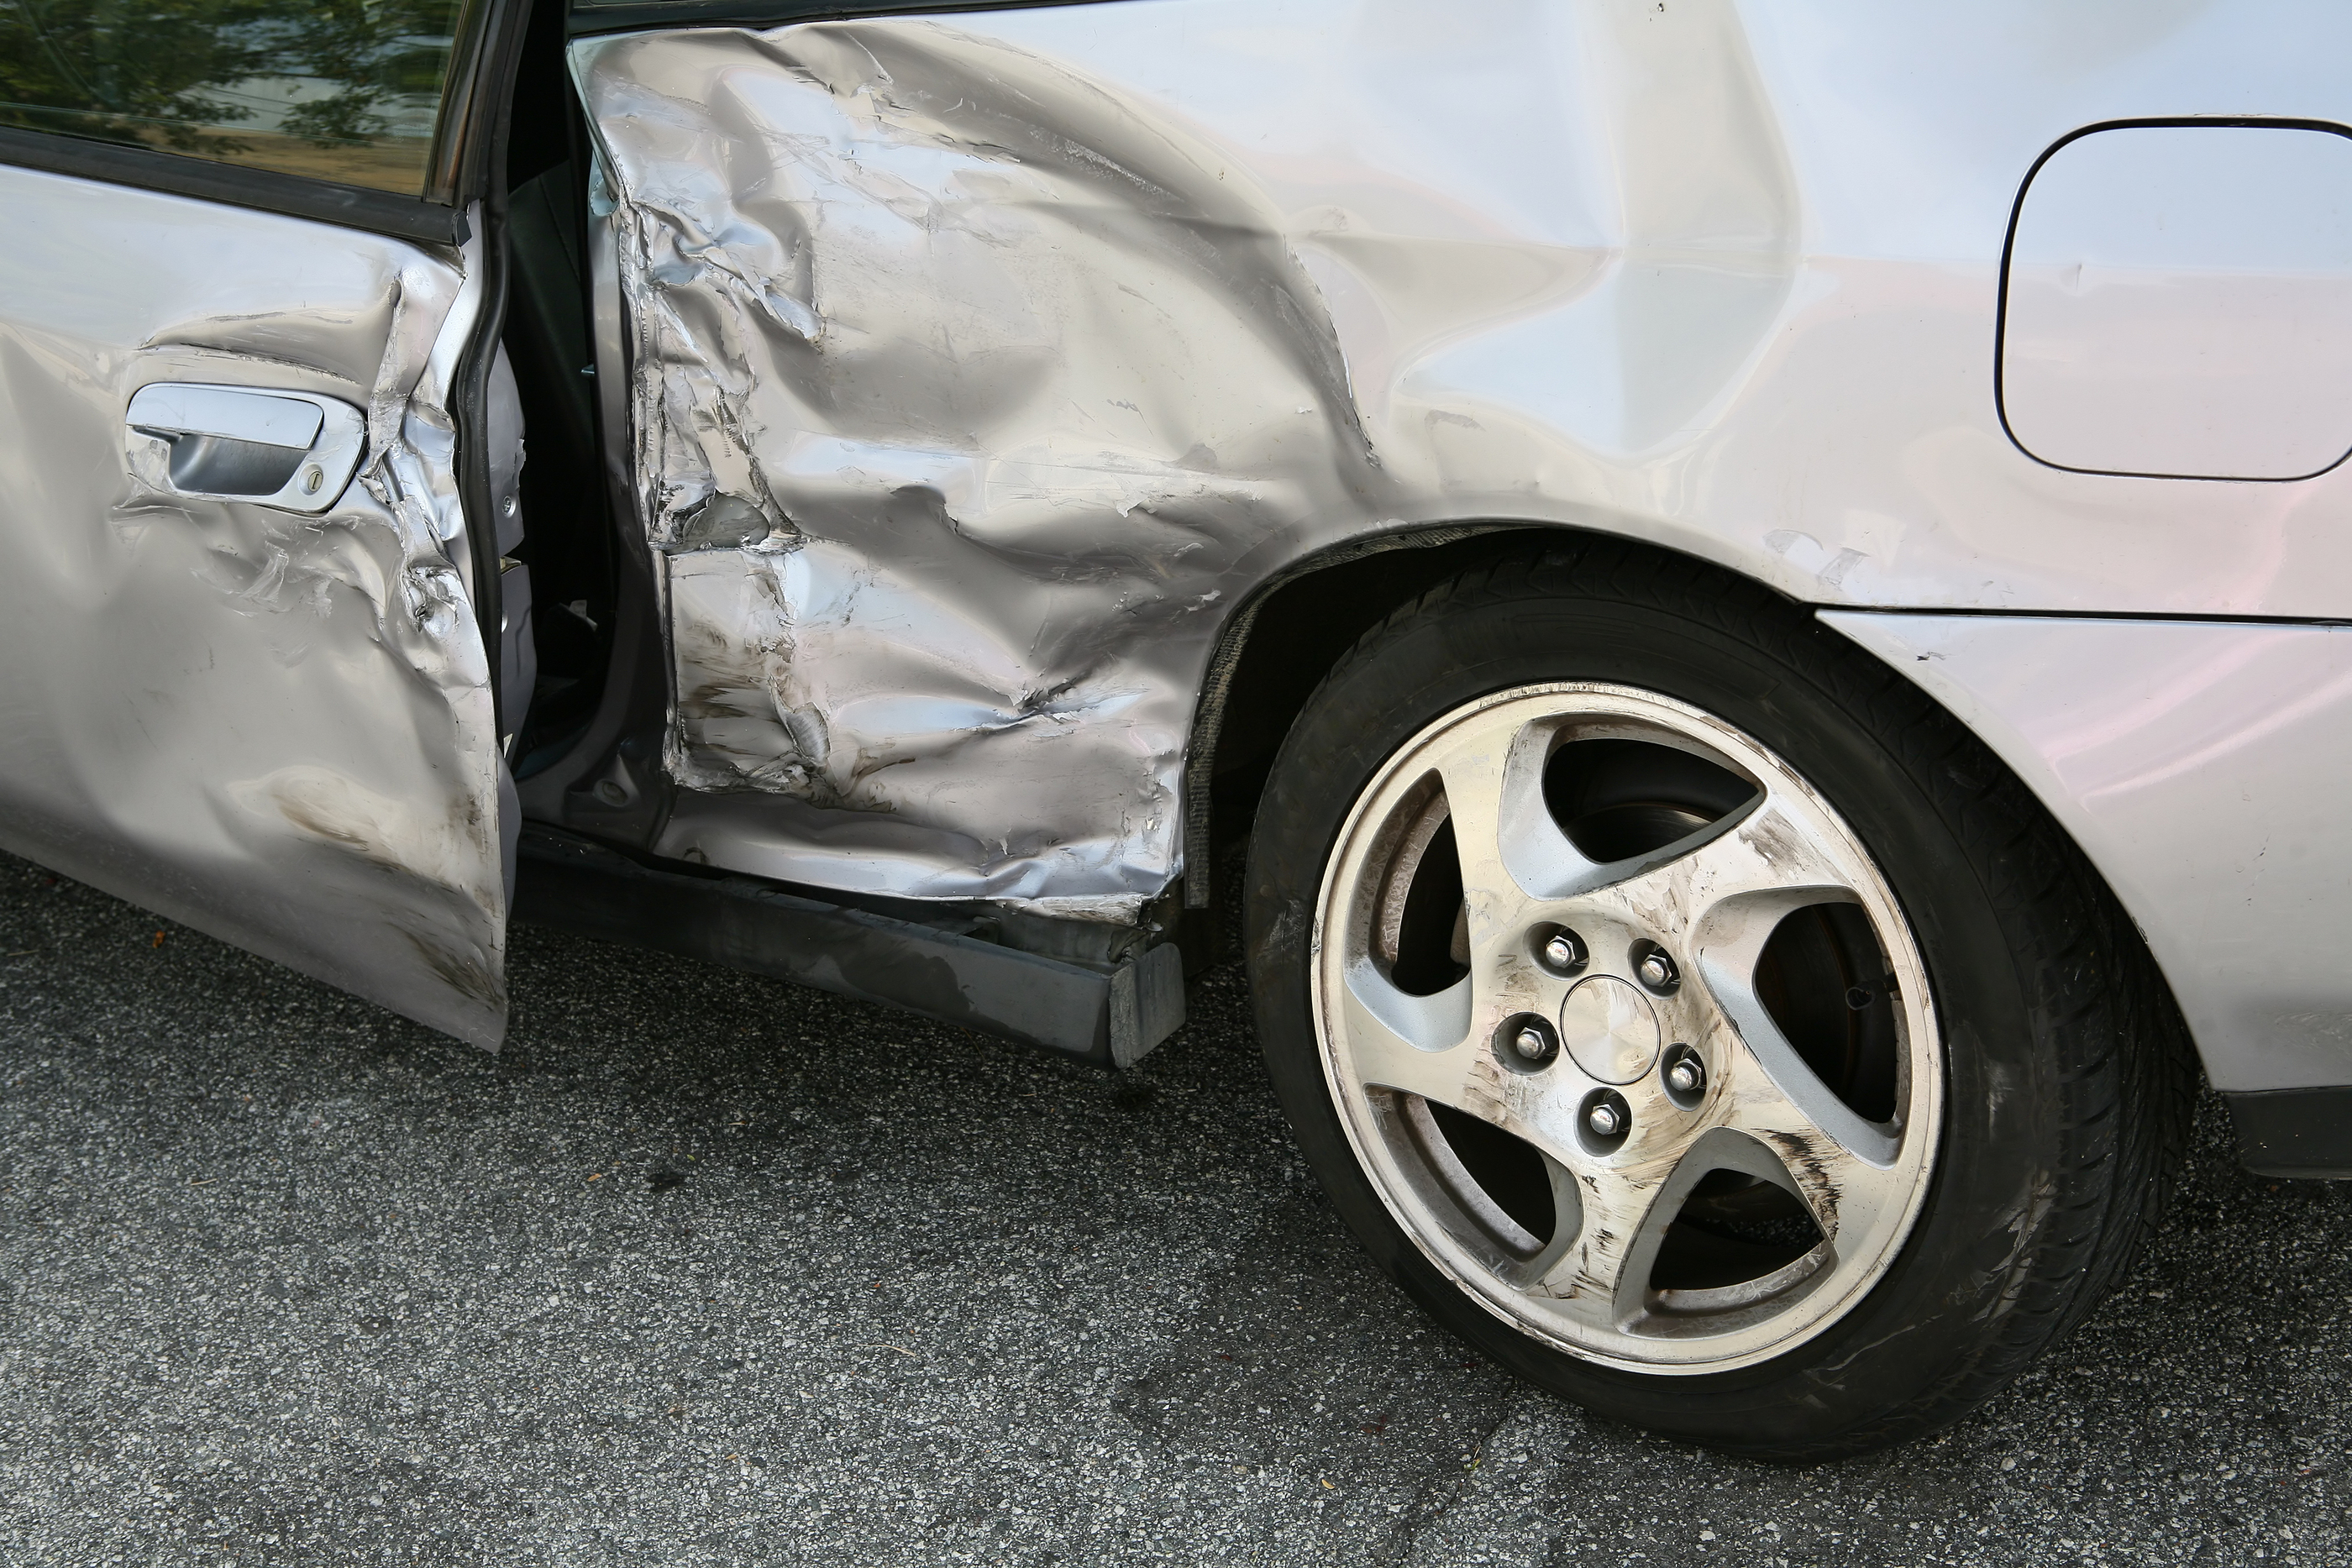 sideswipe collision attorney in utah